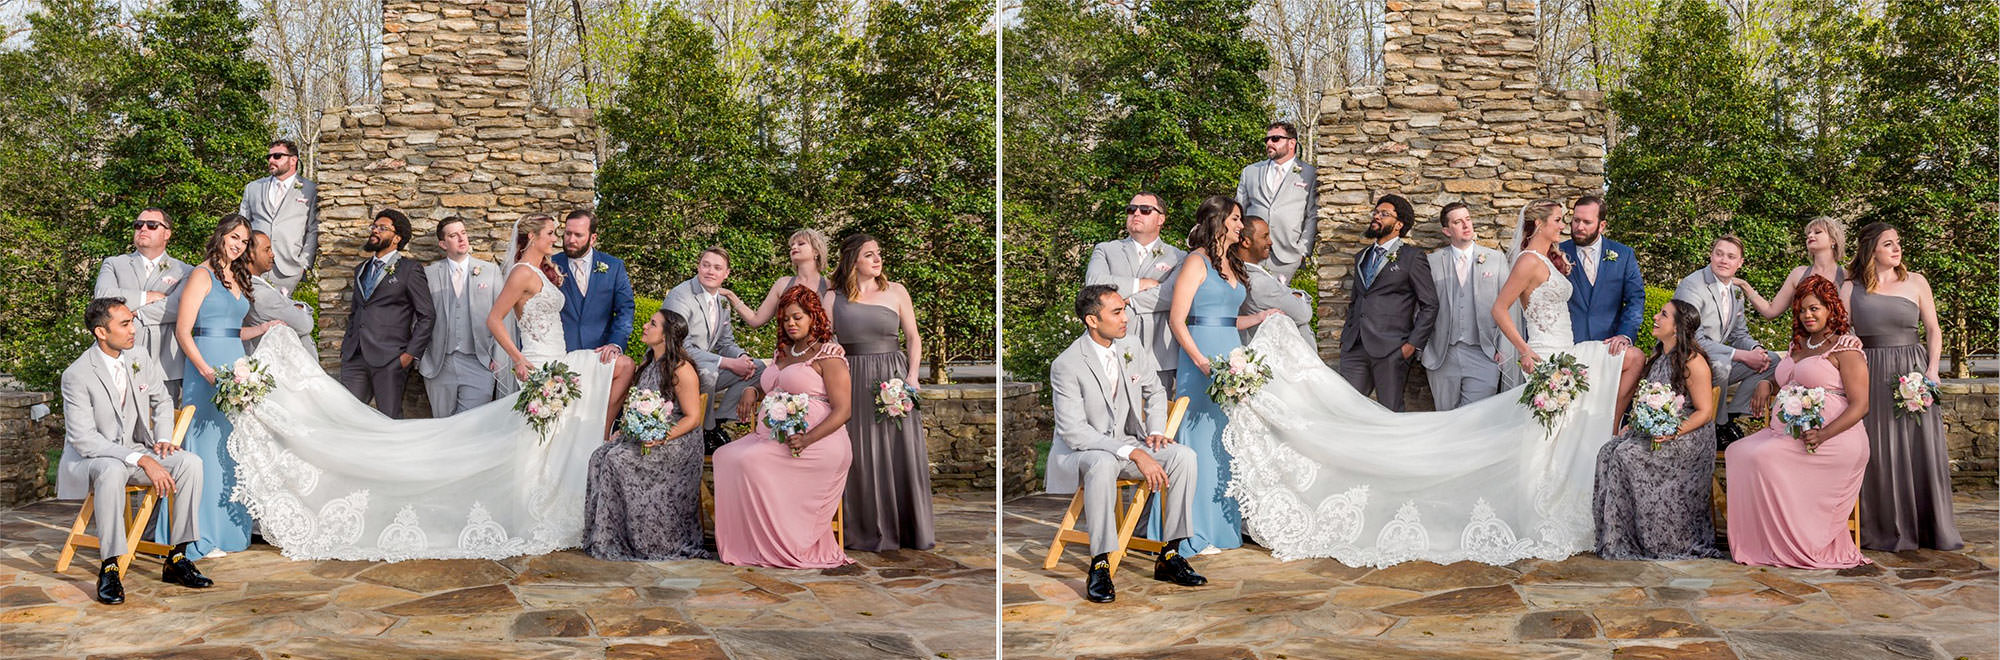 Difference In Wedding Photography Editing